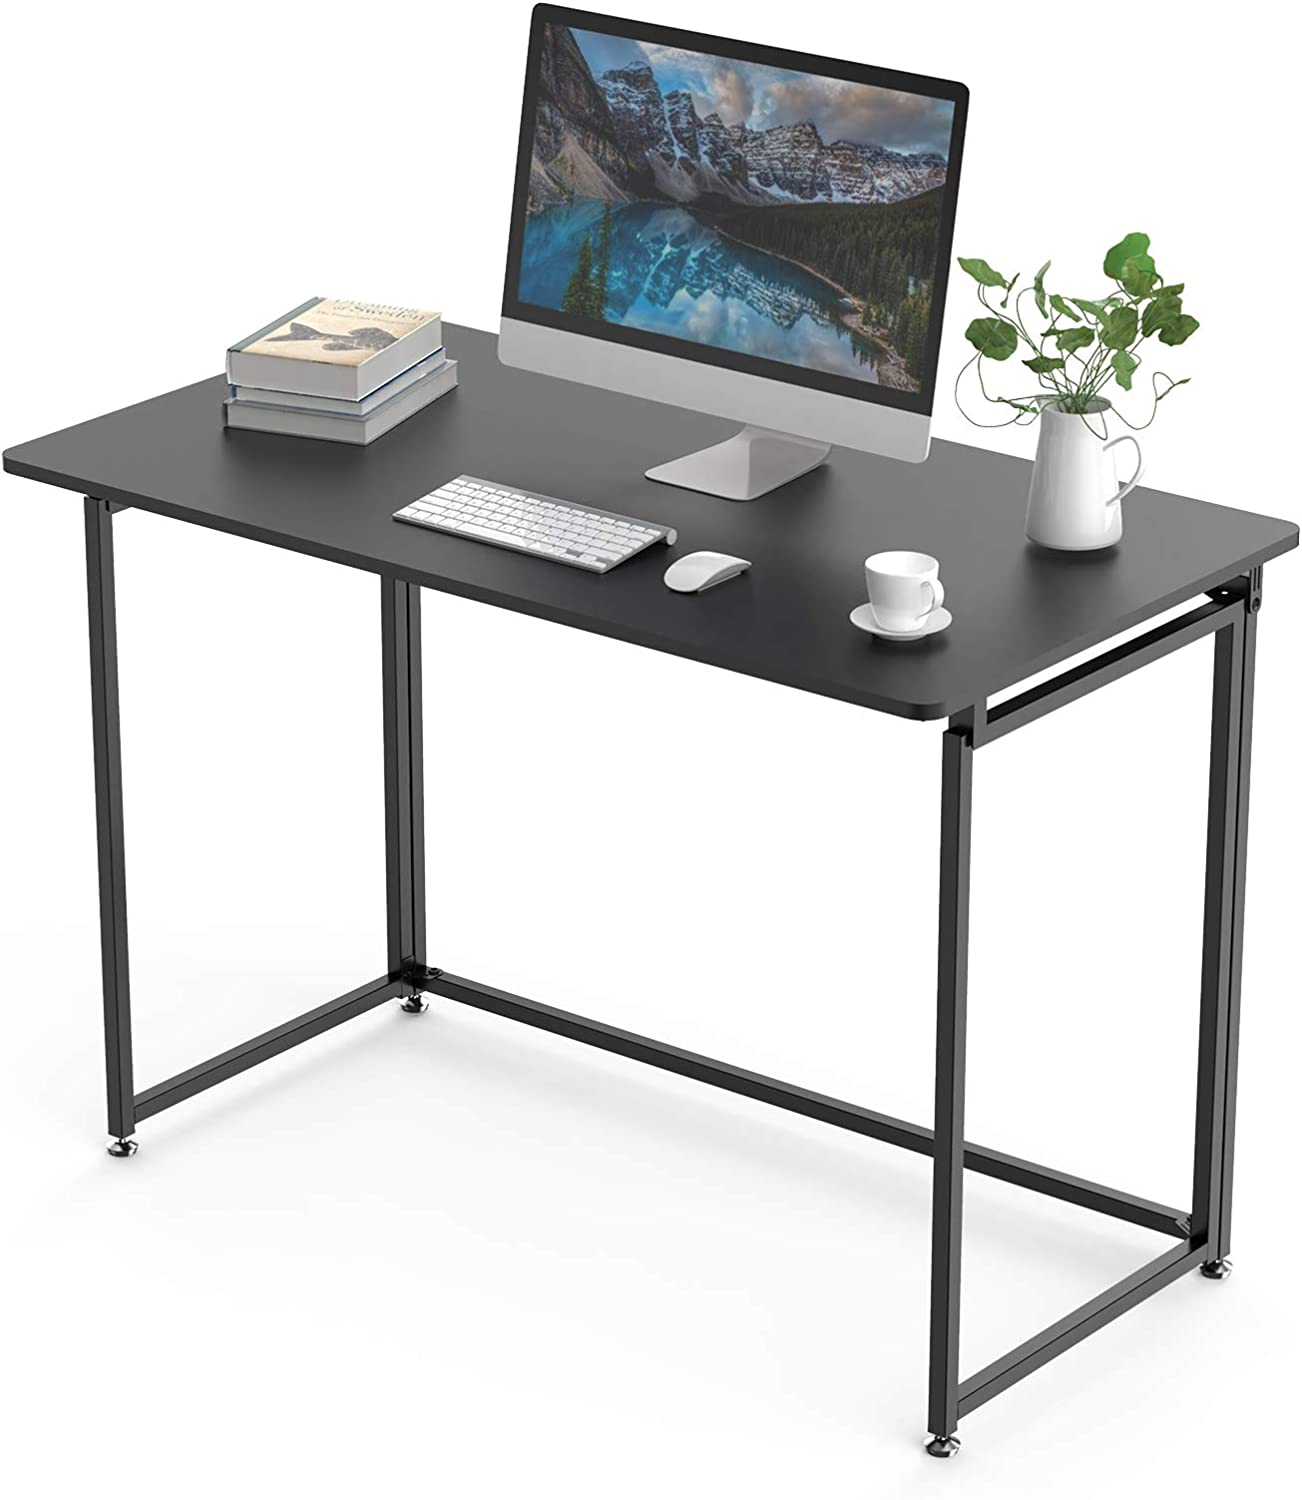 DESIGNA Folding Computer Desk, 43 inch Student Desk Folding, Writing Desk for Home Office, Fold Up Gaming Desk Wood Small Office Table for Teen Working & Crafting, Black